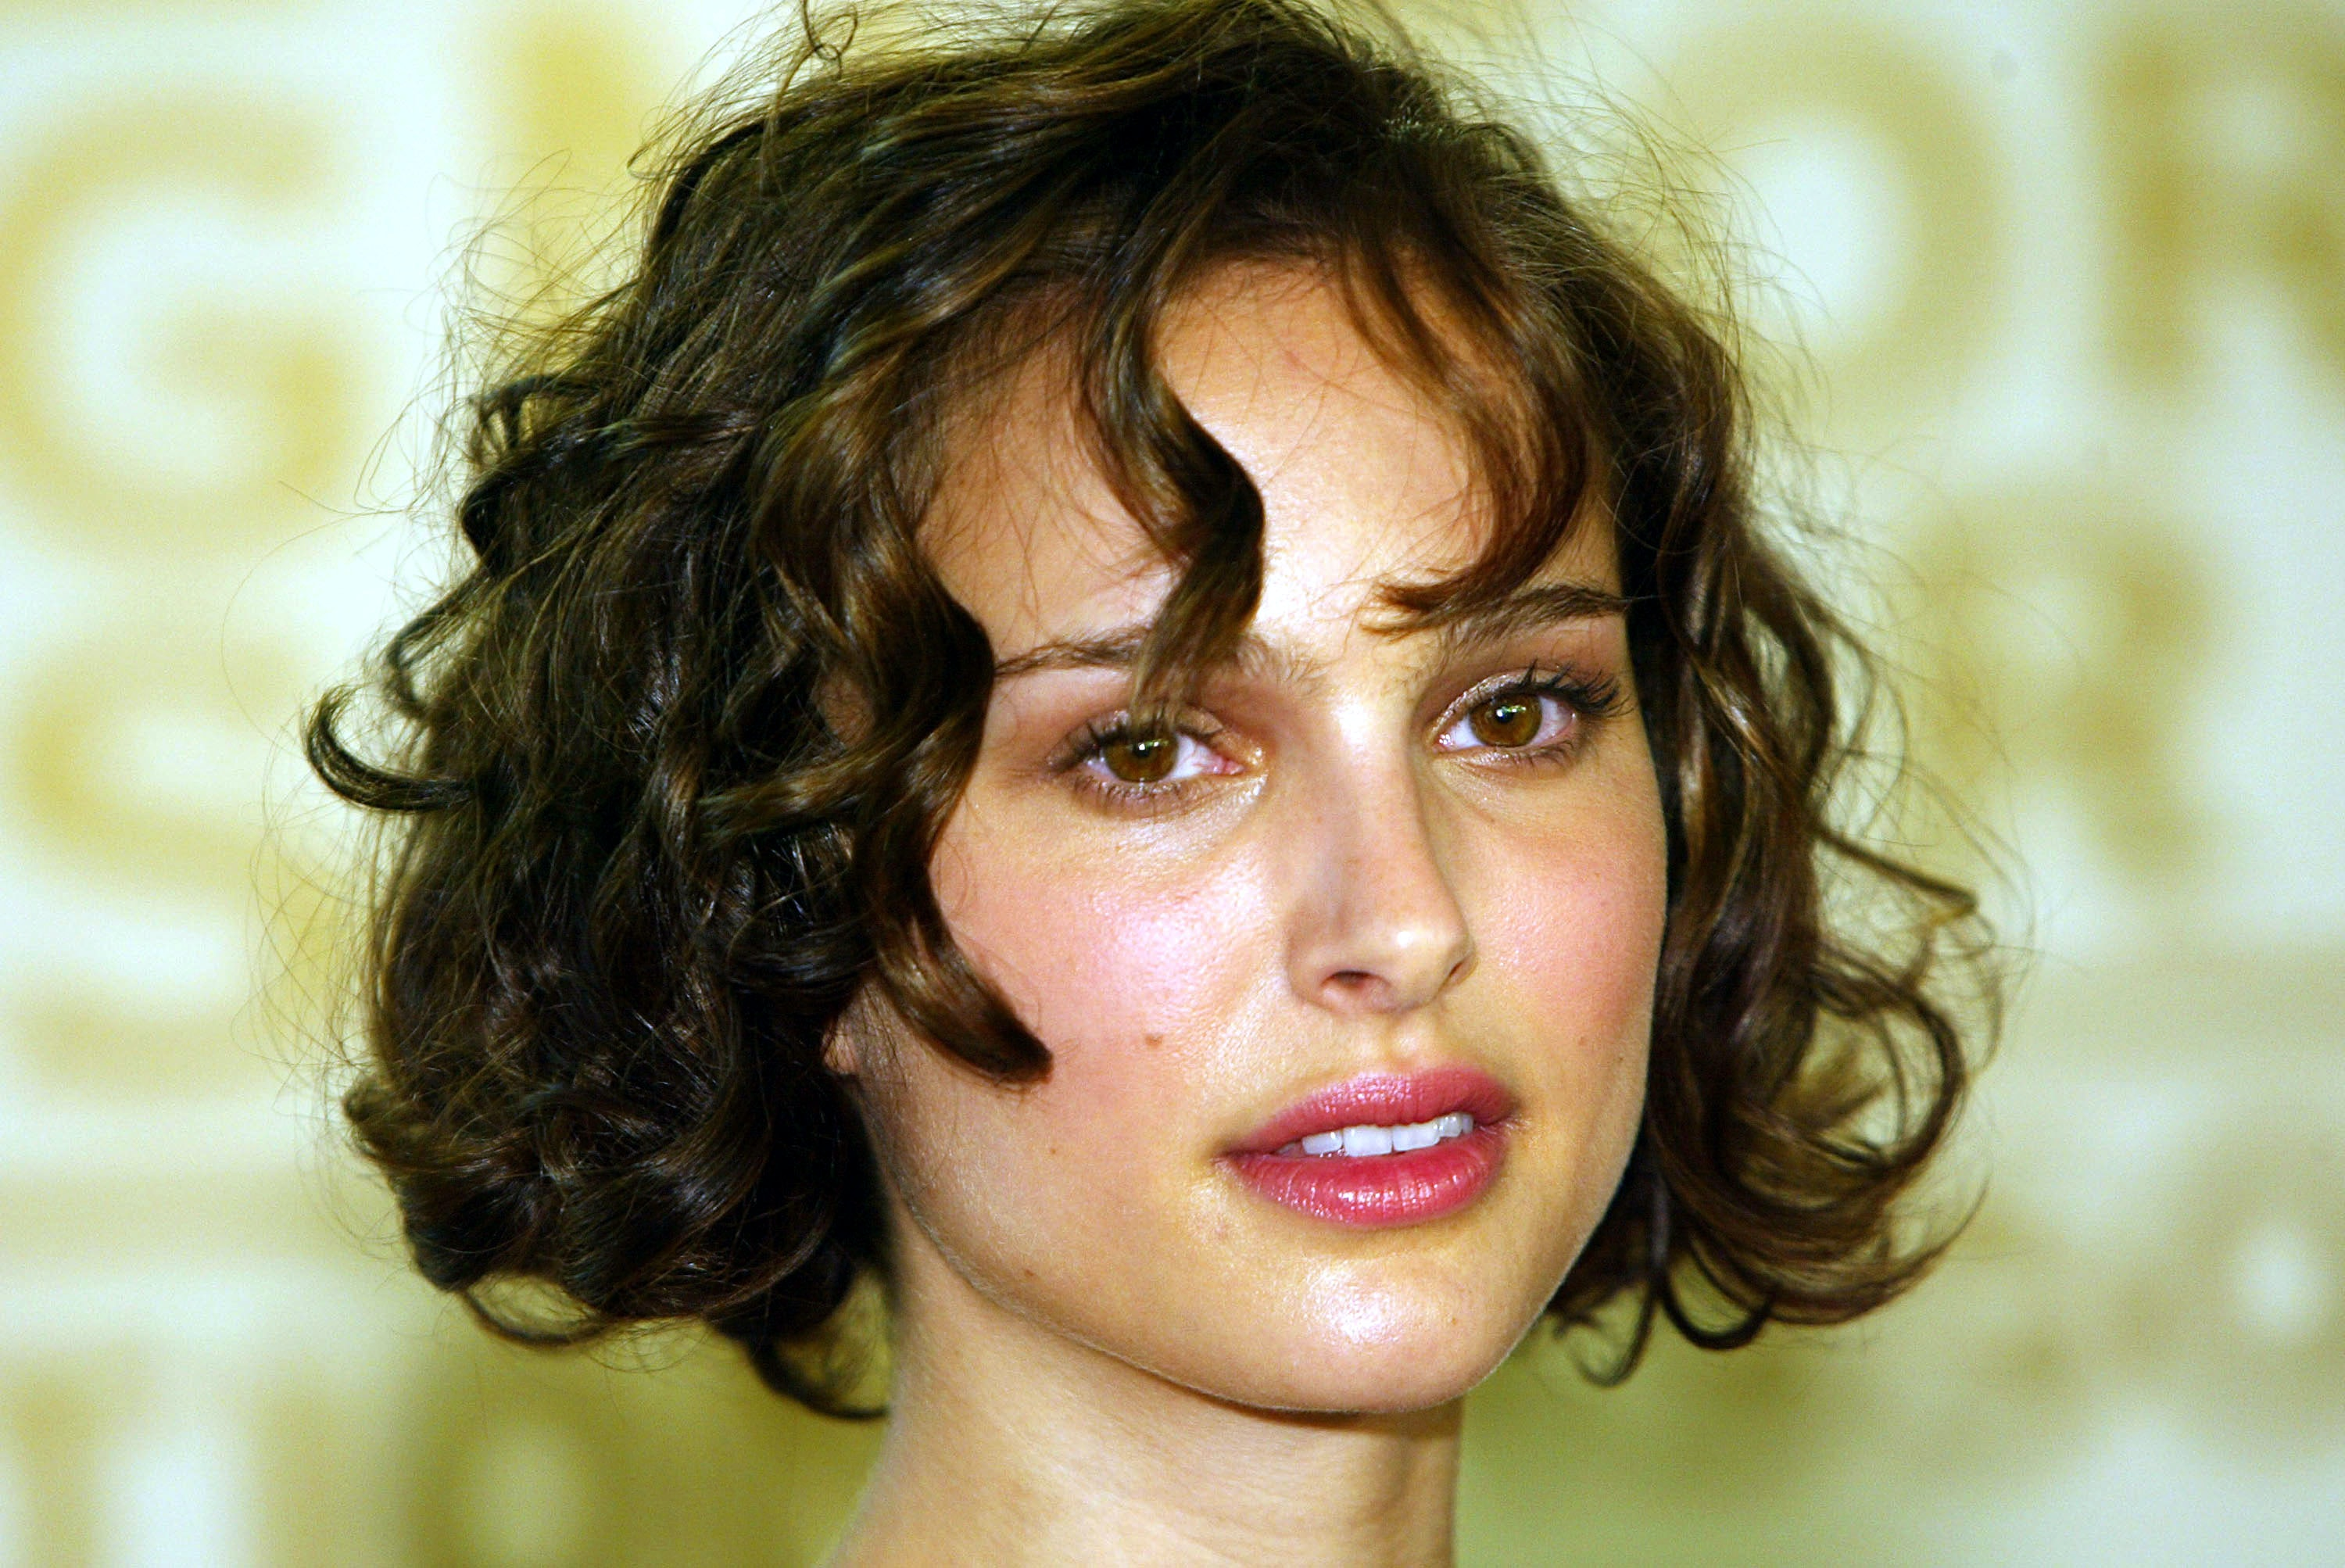 7 hair hacks for growing out short hair when it seems impossible